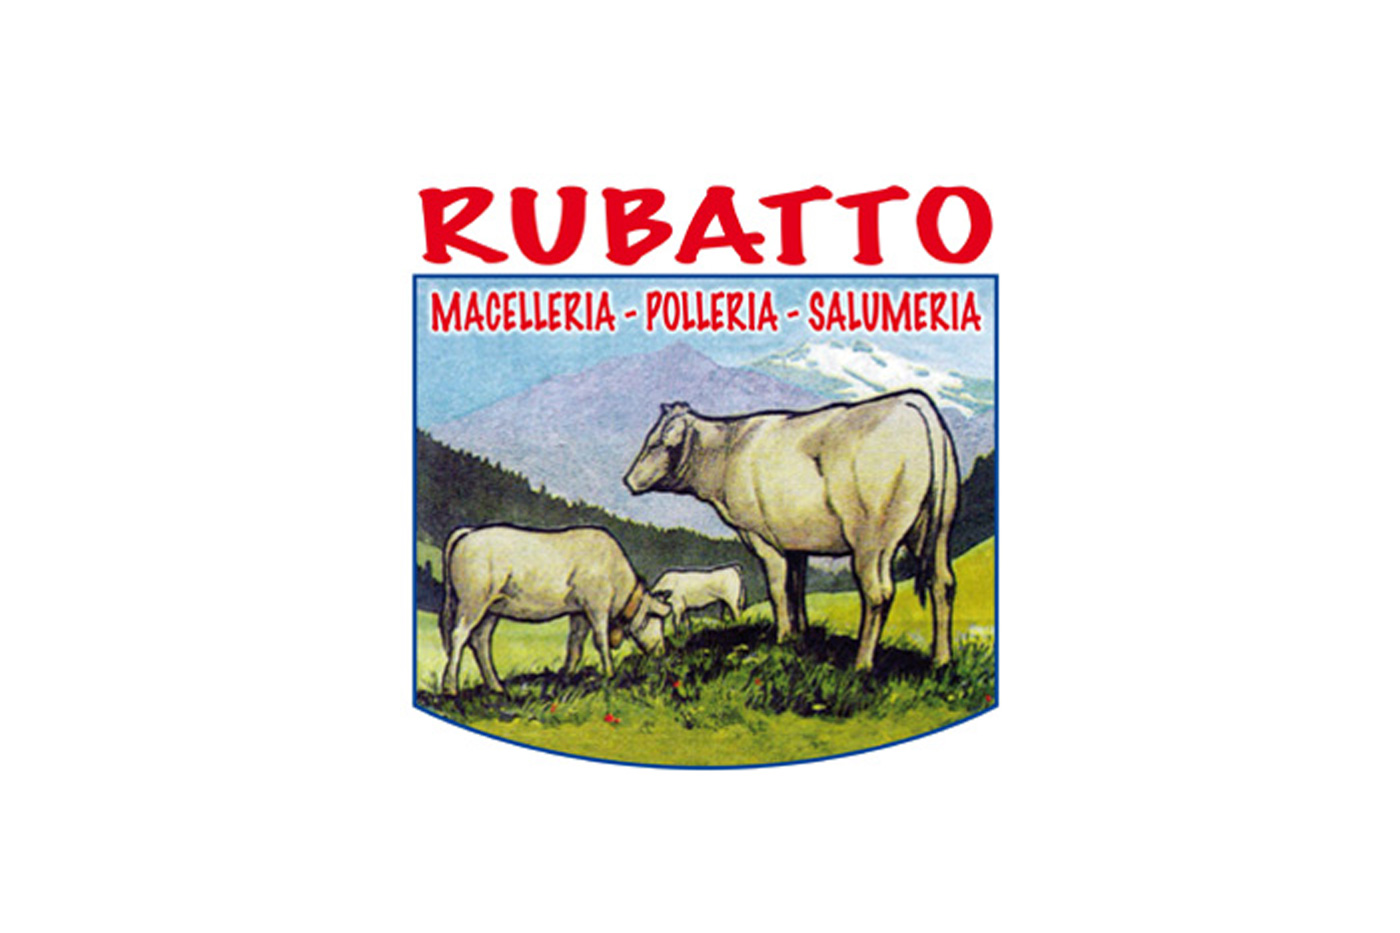 MACELLERIA RUBATTO